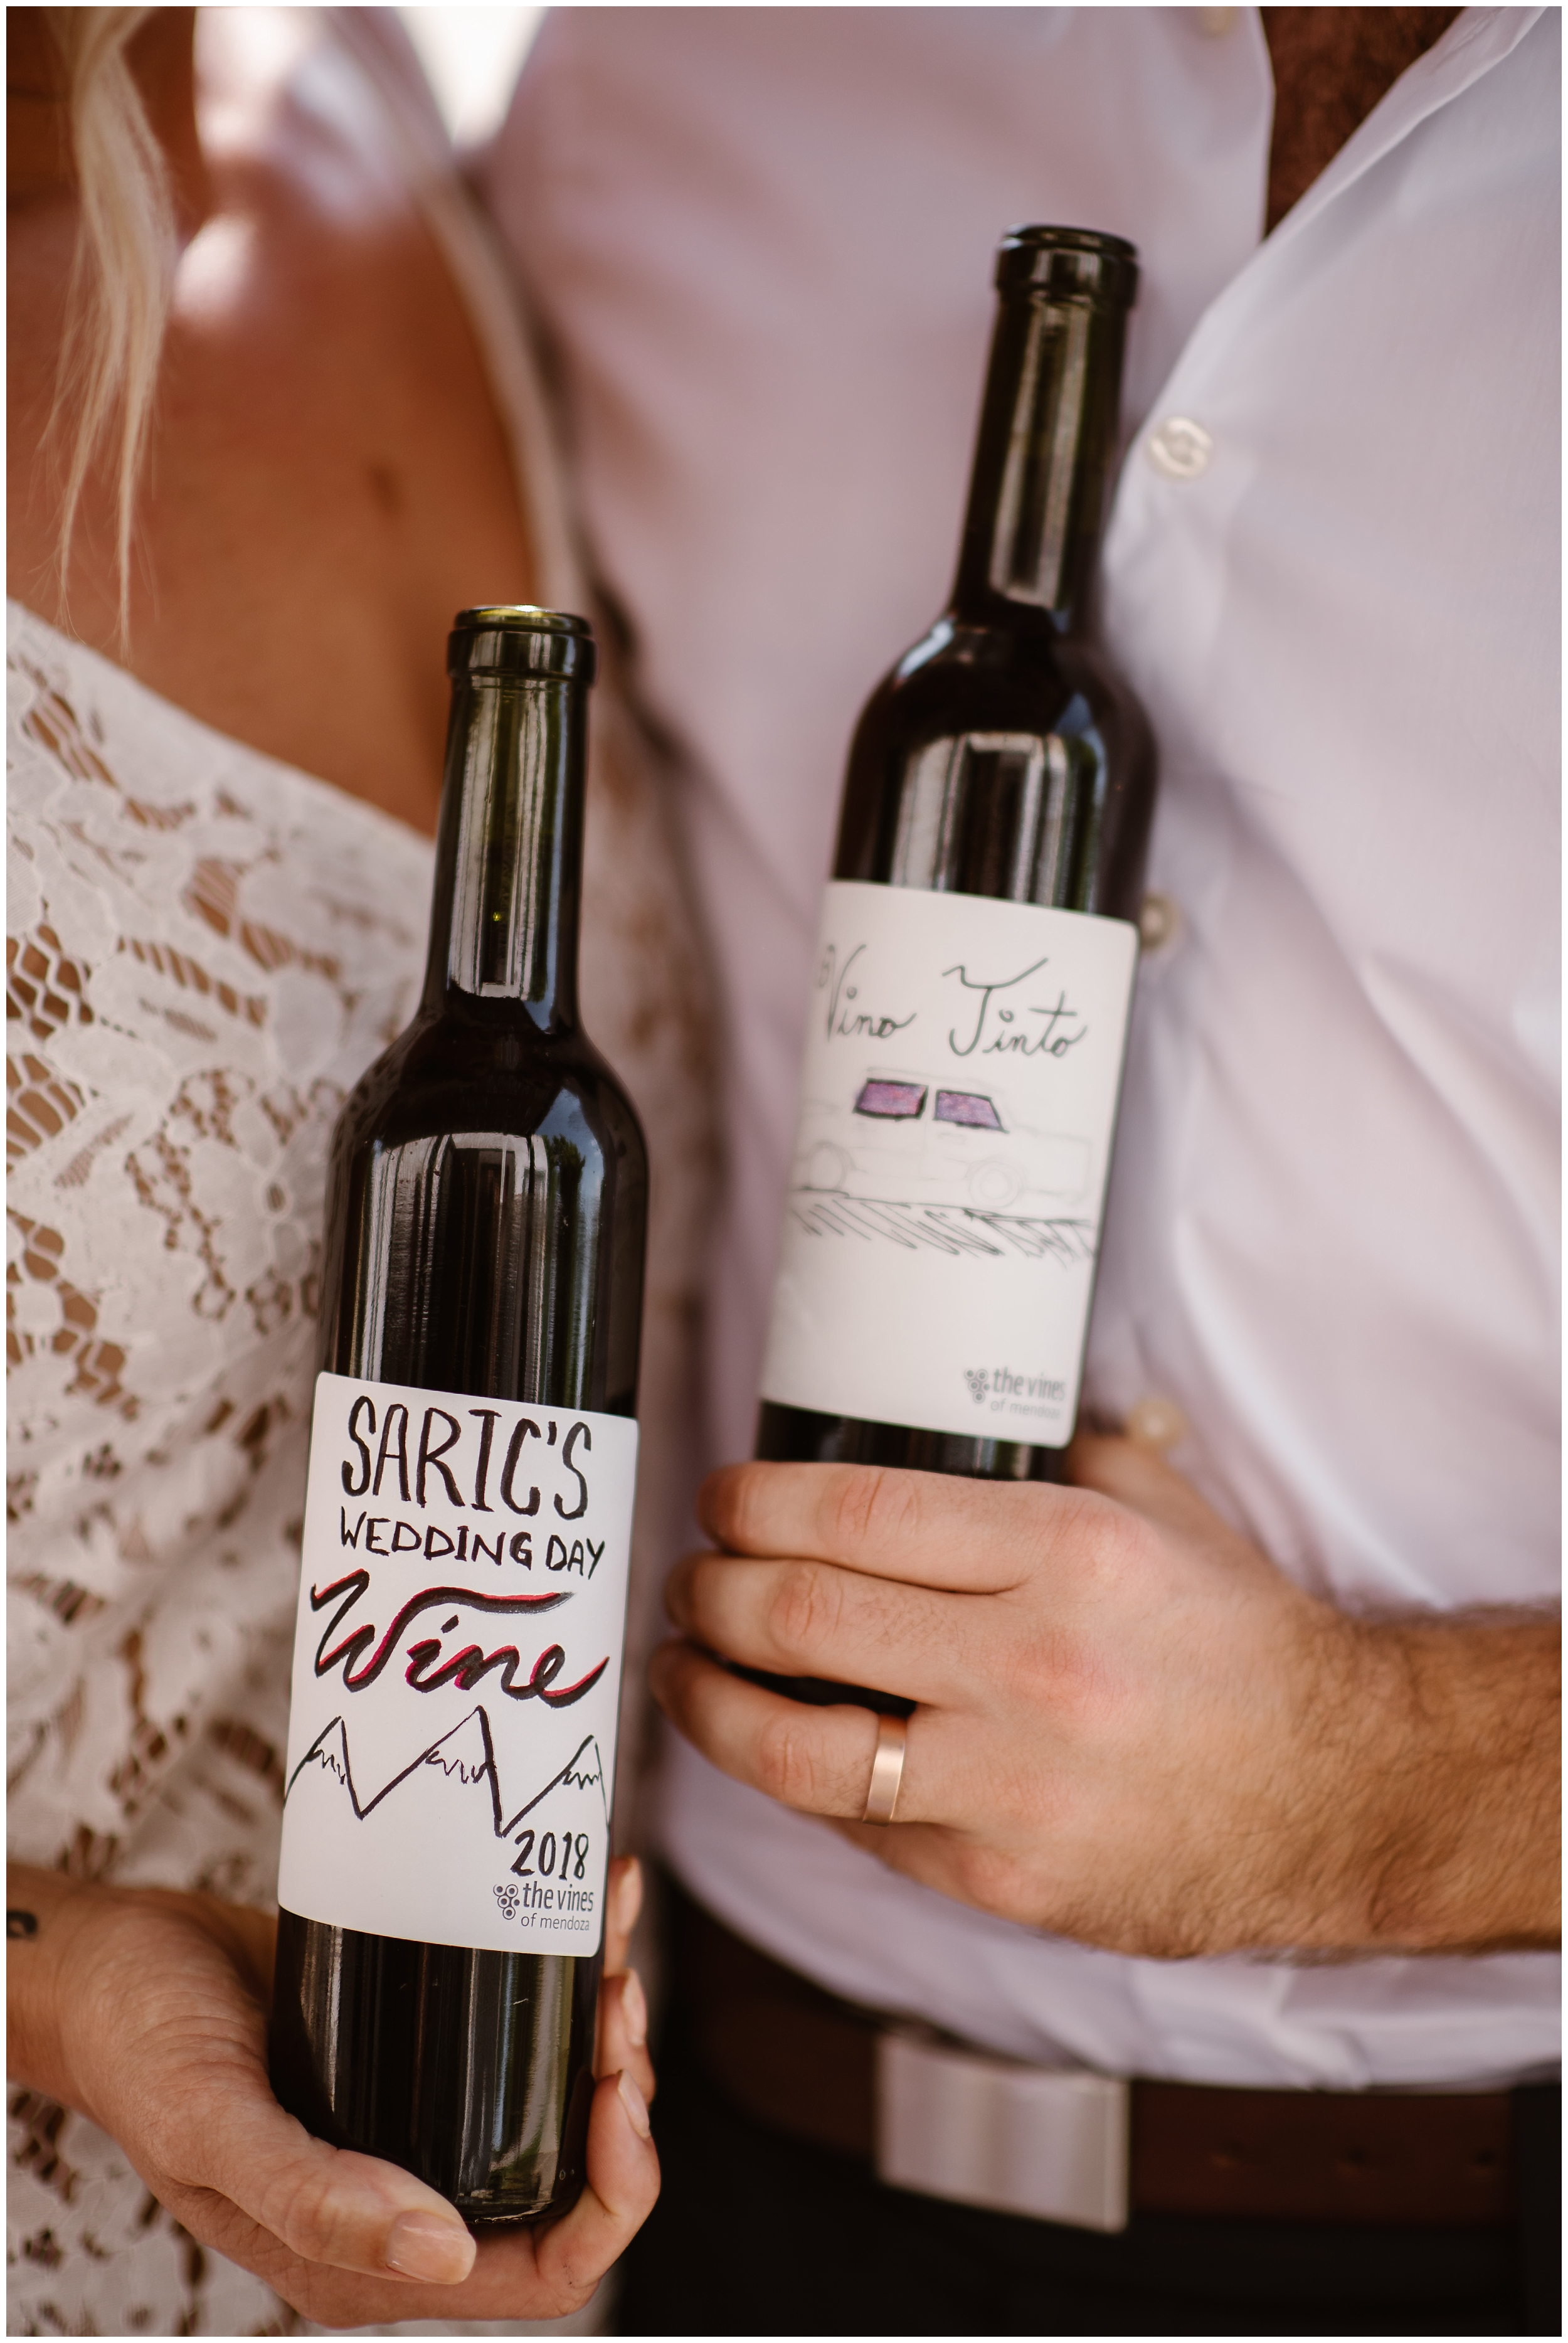 This adventure elopement photo shows a close up of the wine that a bride and groom made on their elopement day . They willl bring thsi special blend home to their family to share with them as a way to include them in their elopement.